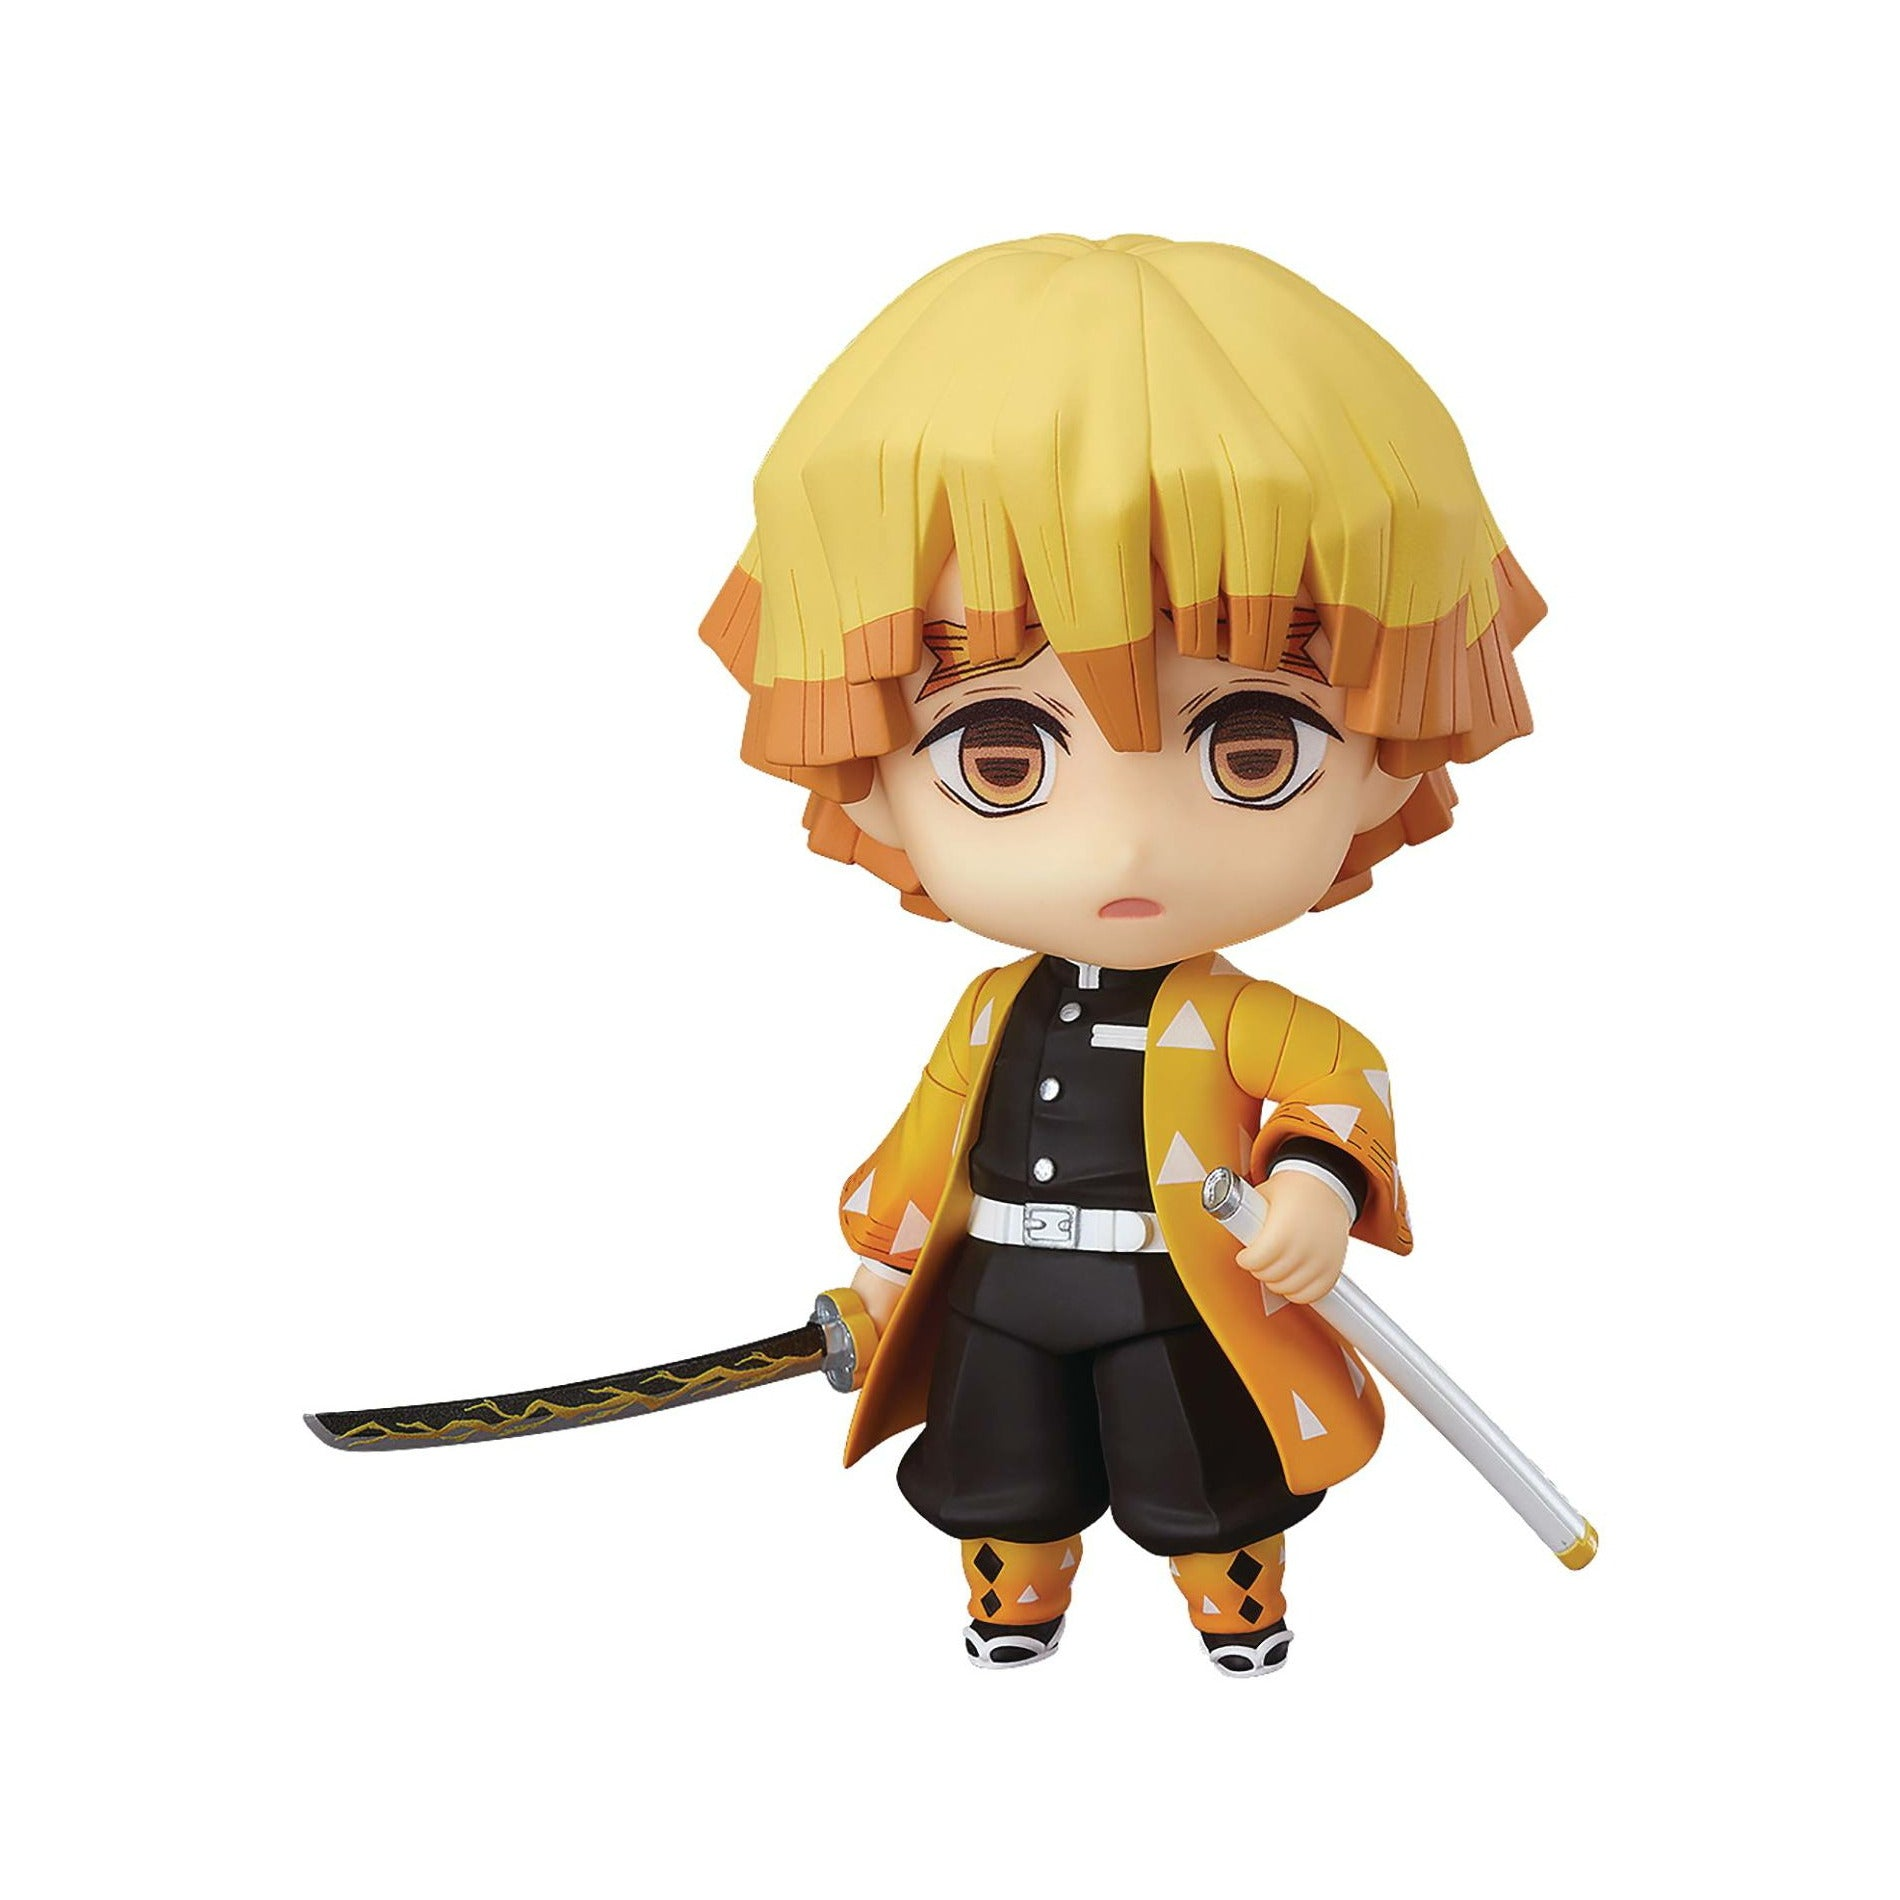 Demon Slayer Kimetsu No Yaiba Zenitsu Agatsuma Nendoroid Action Figure